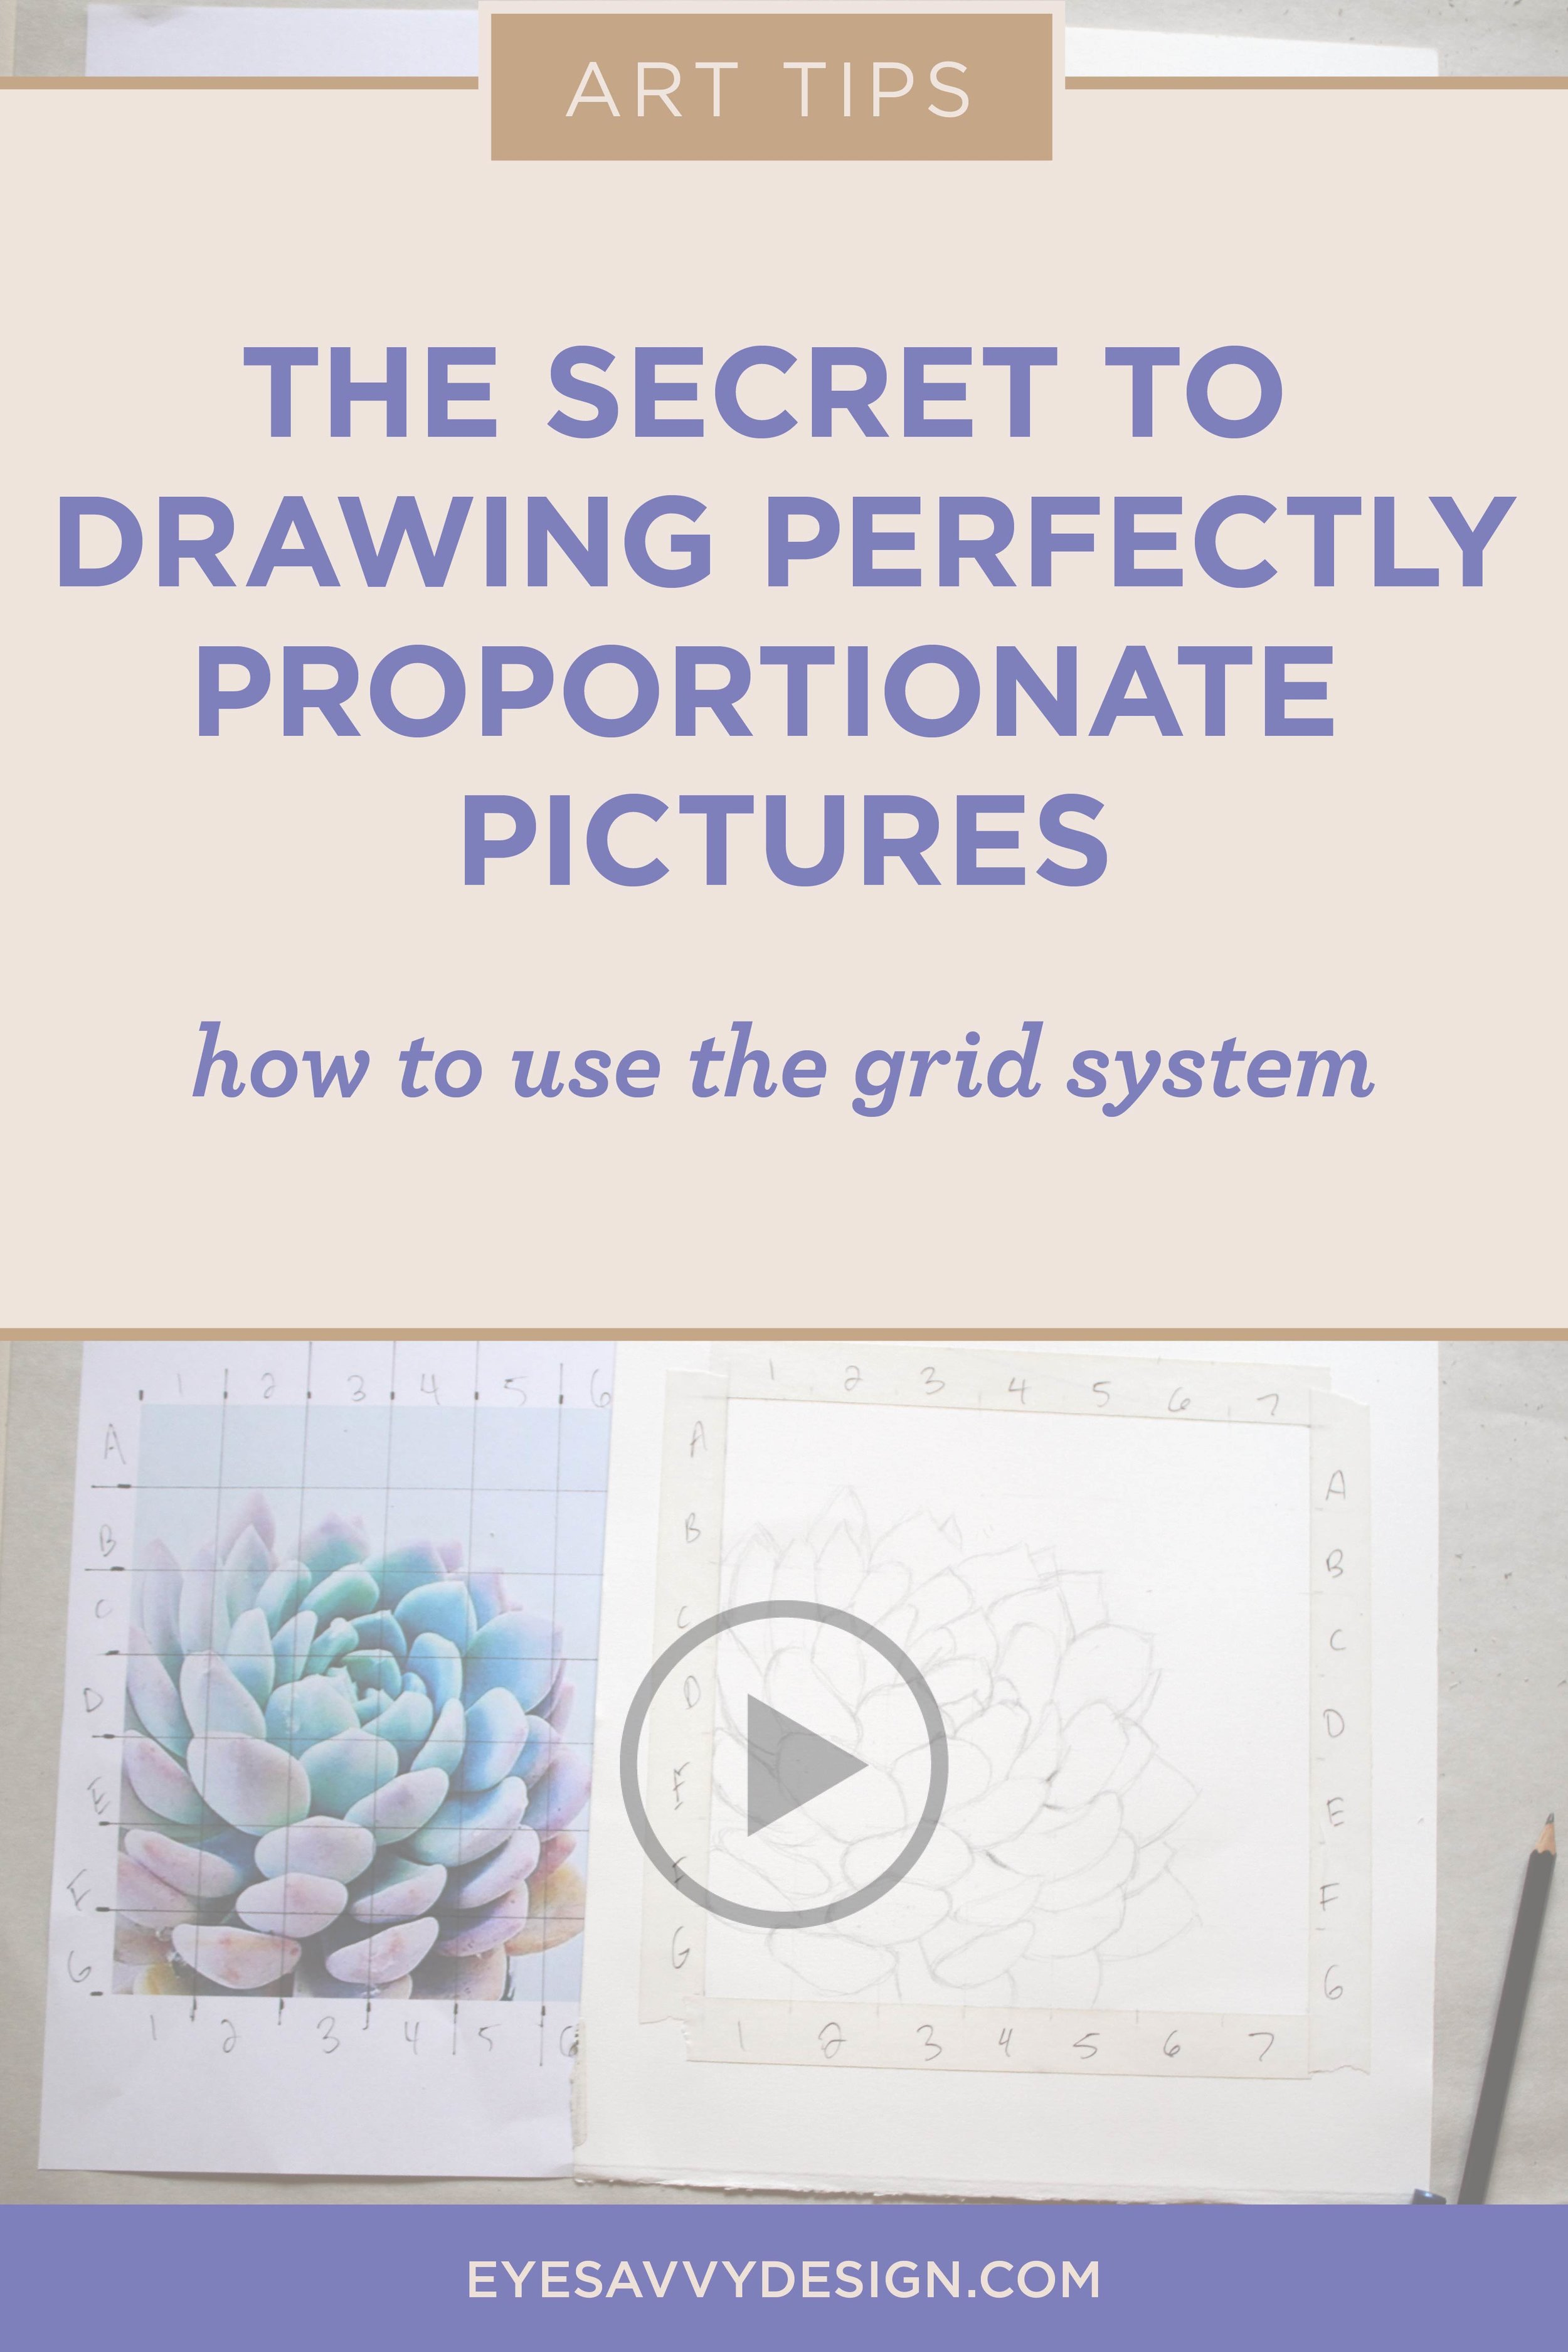 The Secret to Drawing Perfectly Proportionate Pictures by Kiki Bakowski | EyeSavvy Design | Brand Design Studio #stepbystep #tutorial will teach you how to use the #gridsystem so that it becomes incredibly easy to make your drawings and paintings look professionally drawn. #forbeginners #howtodraw, #becomeanartist #drawing101 #easydrawingtips #artisticbranding #artlessons